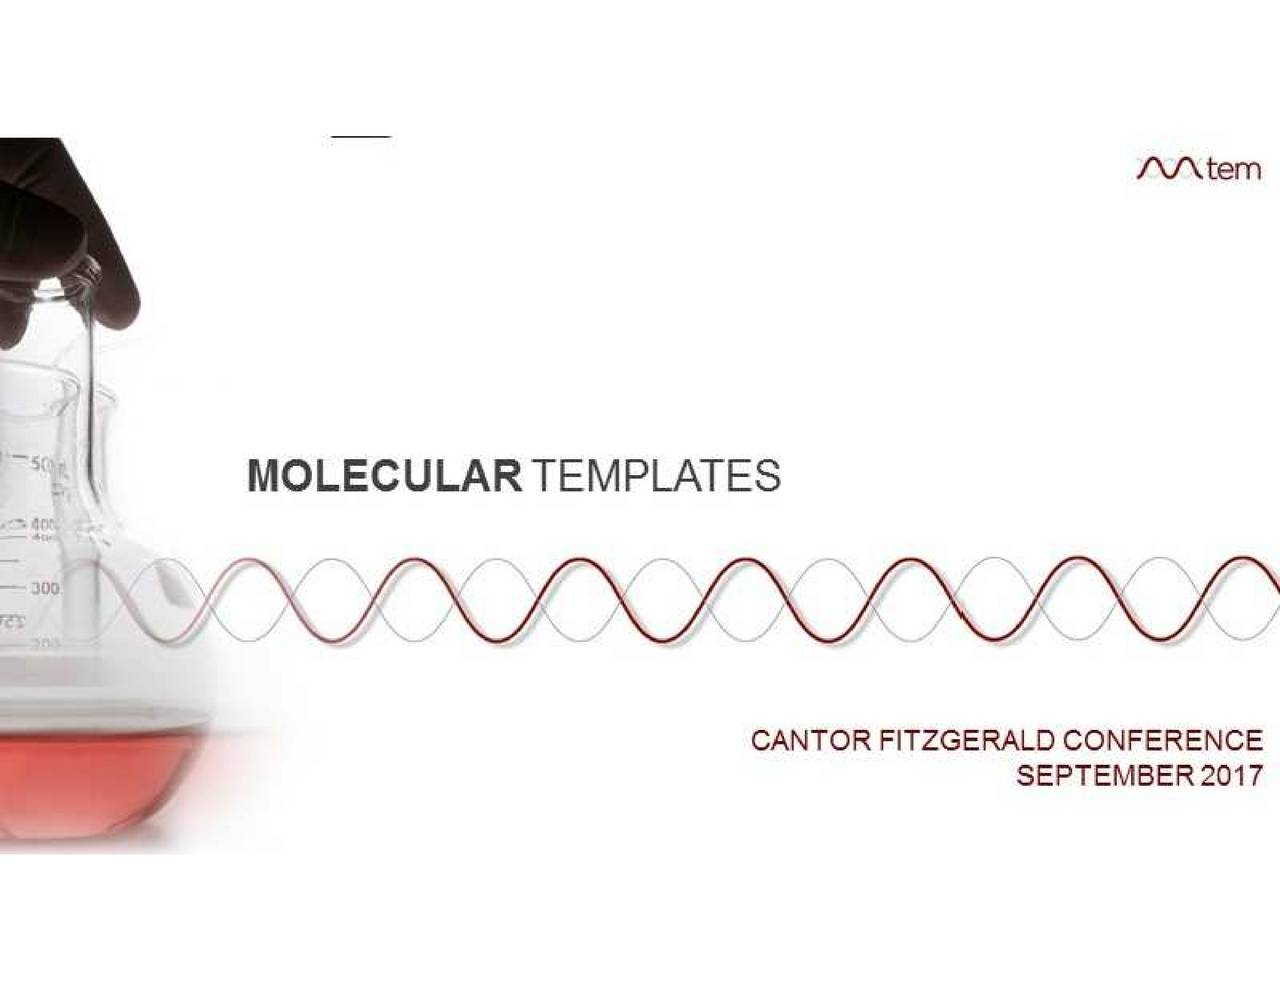 Molecular Templates (MTEM) Presents At Cantor Fitzgerald Global ...